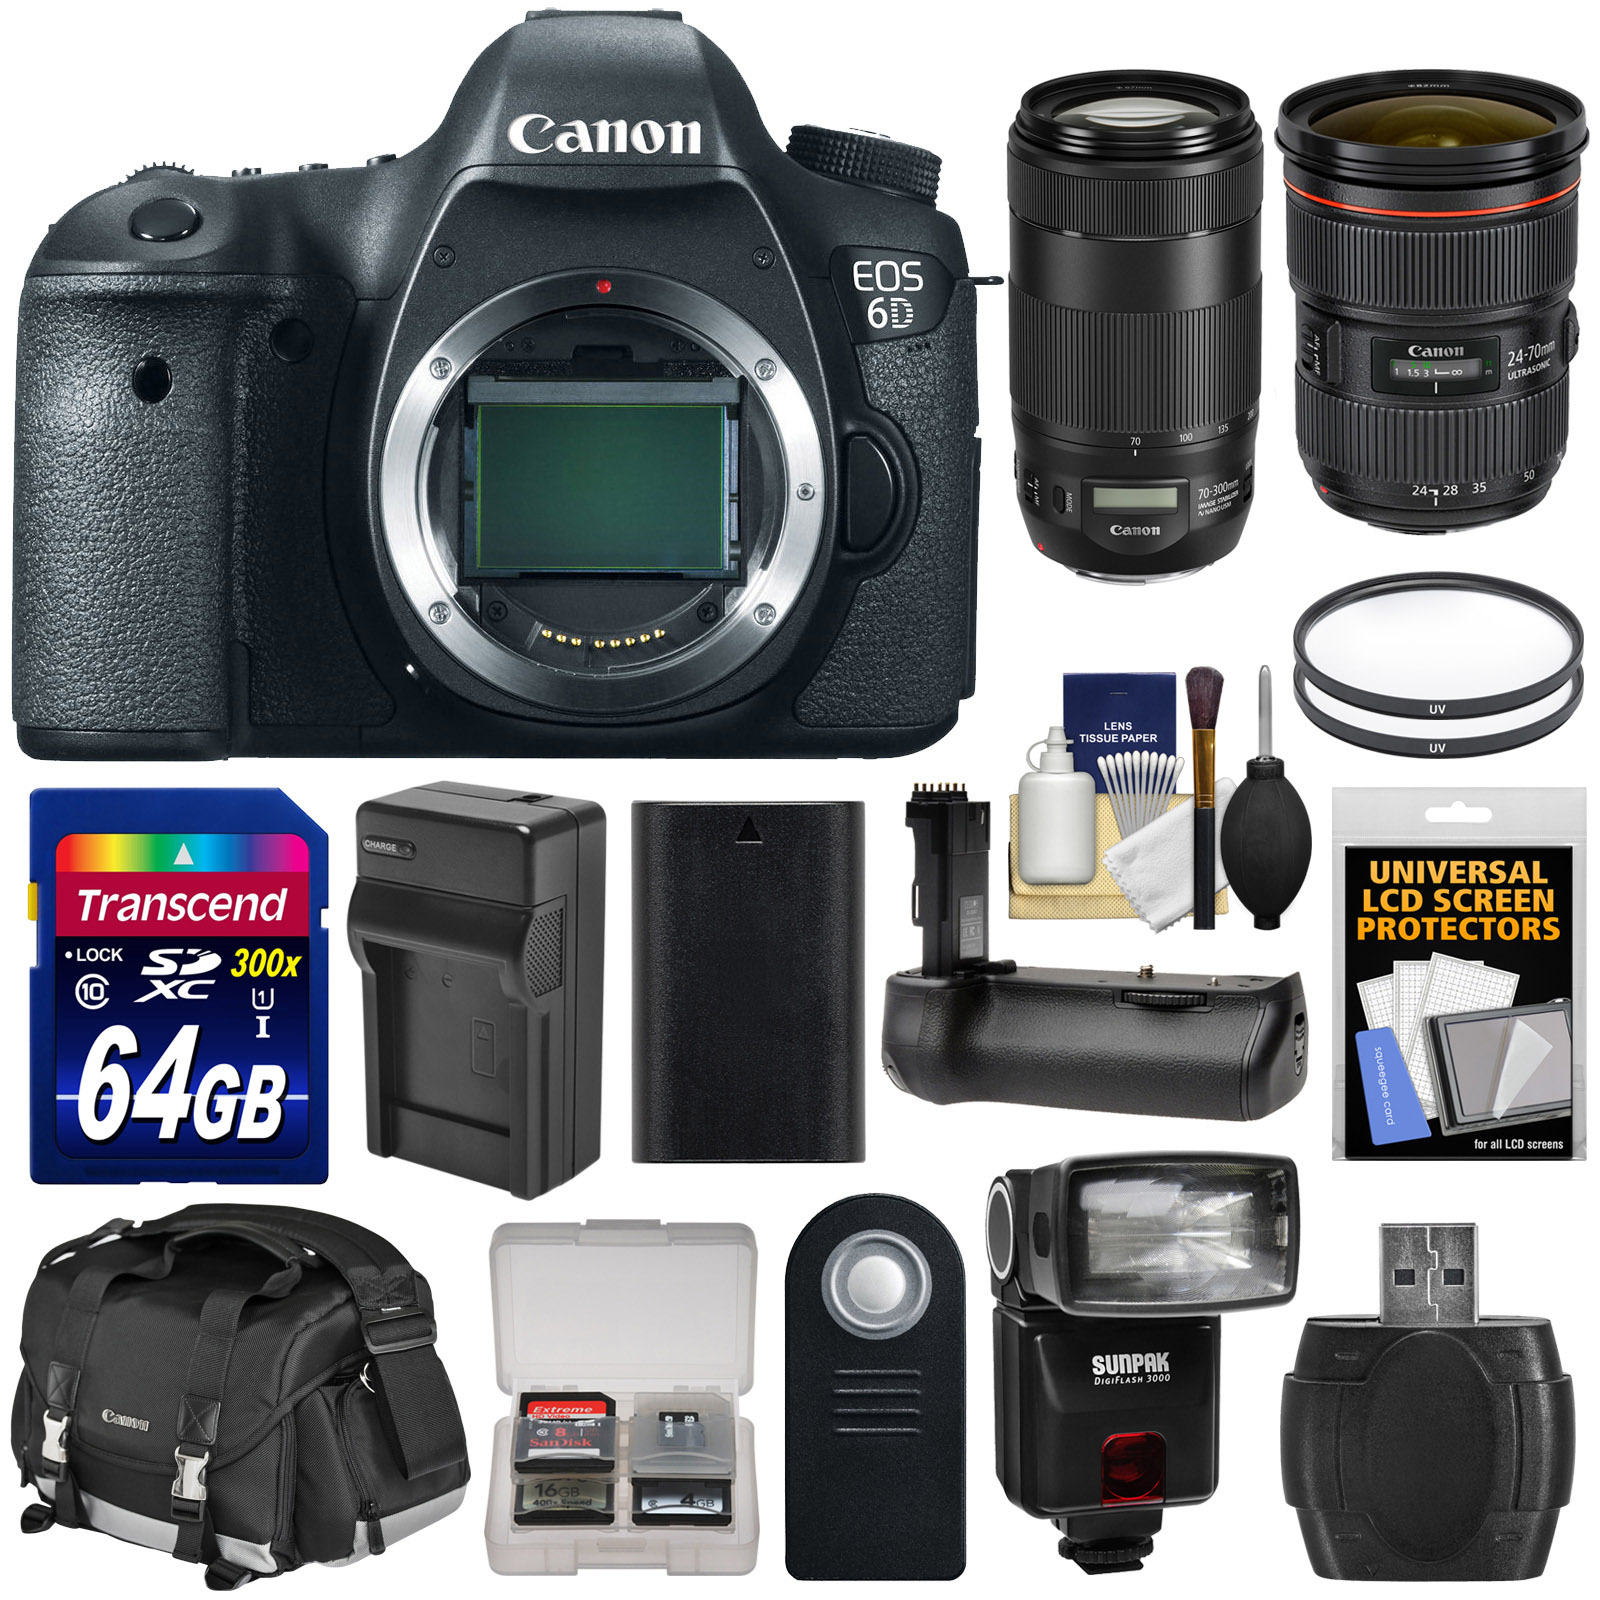 Canon EOS 6D Digital SLR Camera Body with 24-70mm f 2.8 L II & 70-300mm IS Lenses + 64GB Card + Case + Flash + Grip +... by Canon